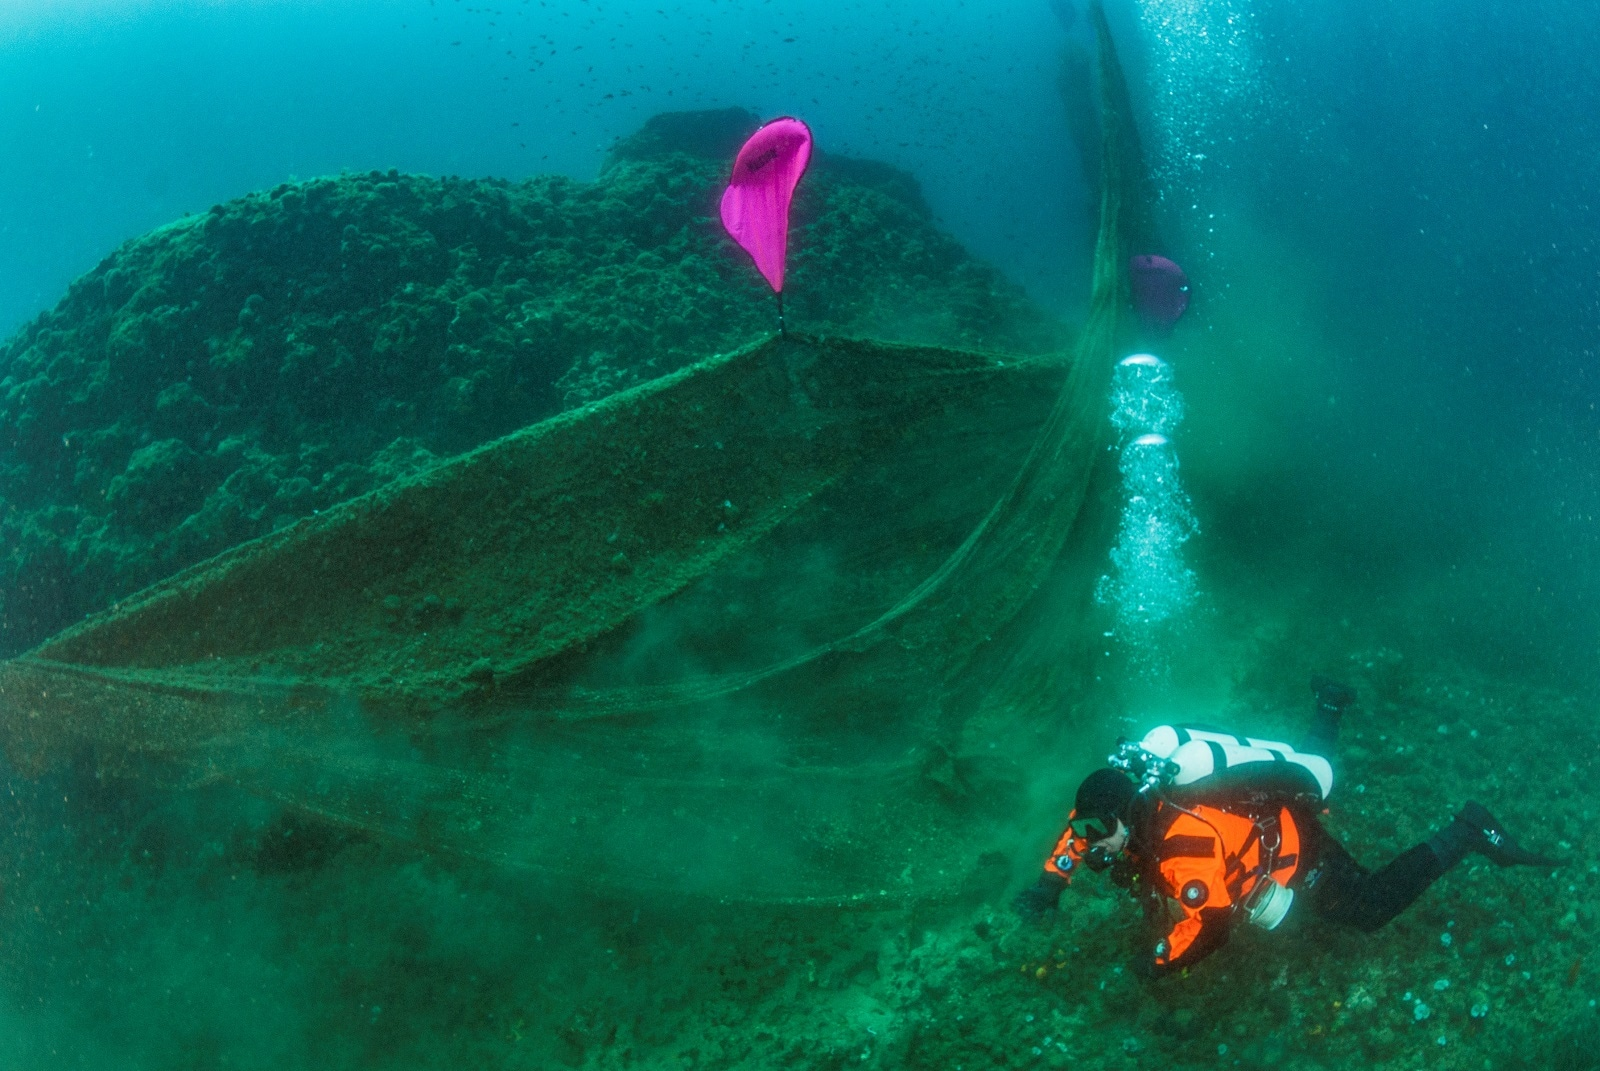 A diver swims next to a ghost fishing net on the seabed at the village of Stratoni, near Halkidiki, Greece, May 18, 2019. Areti Kominou/Ghost Fishing Greece/Handout via REUTERS